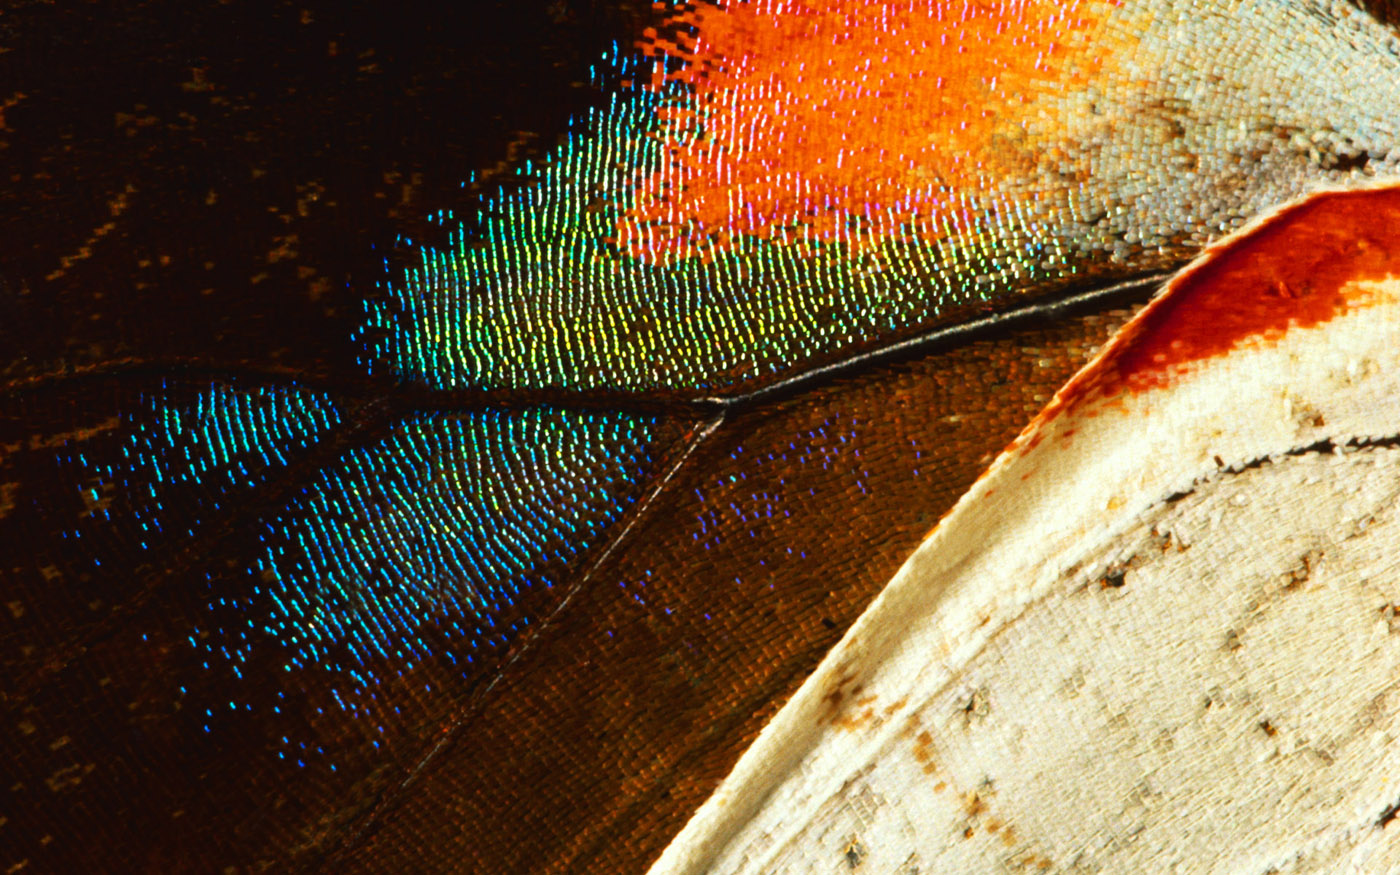 Feather wings close-up 29387